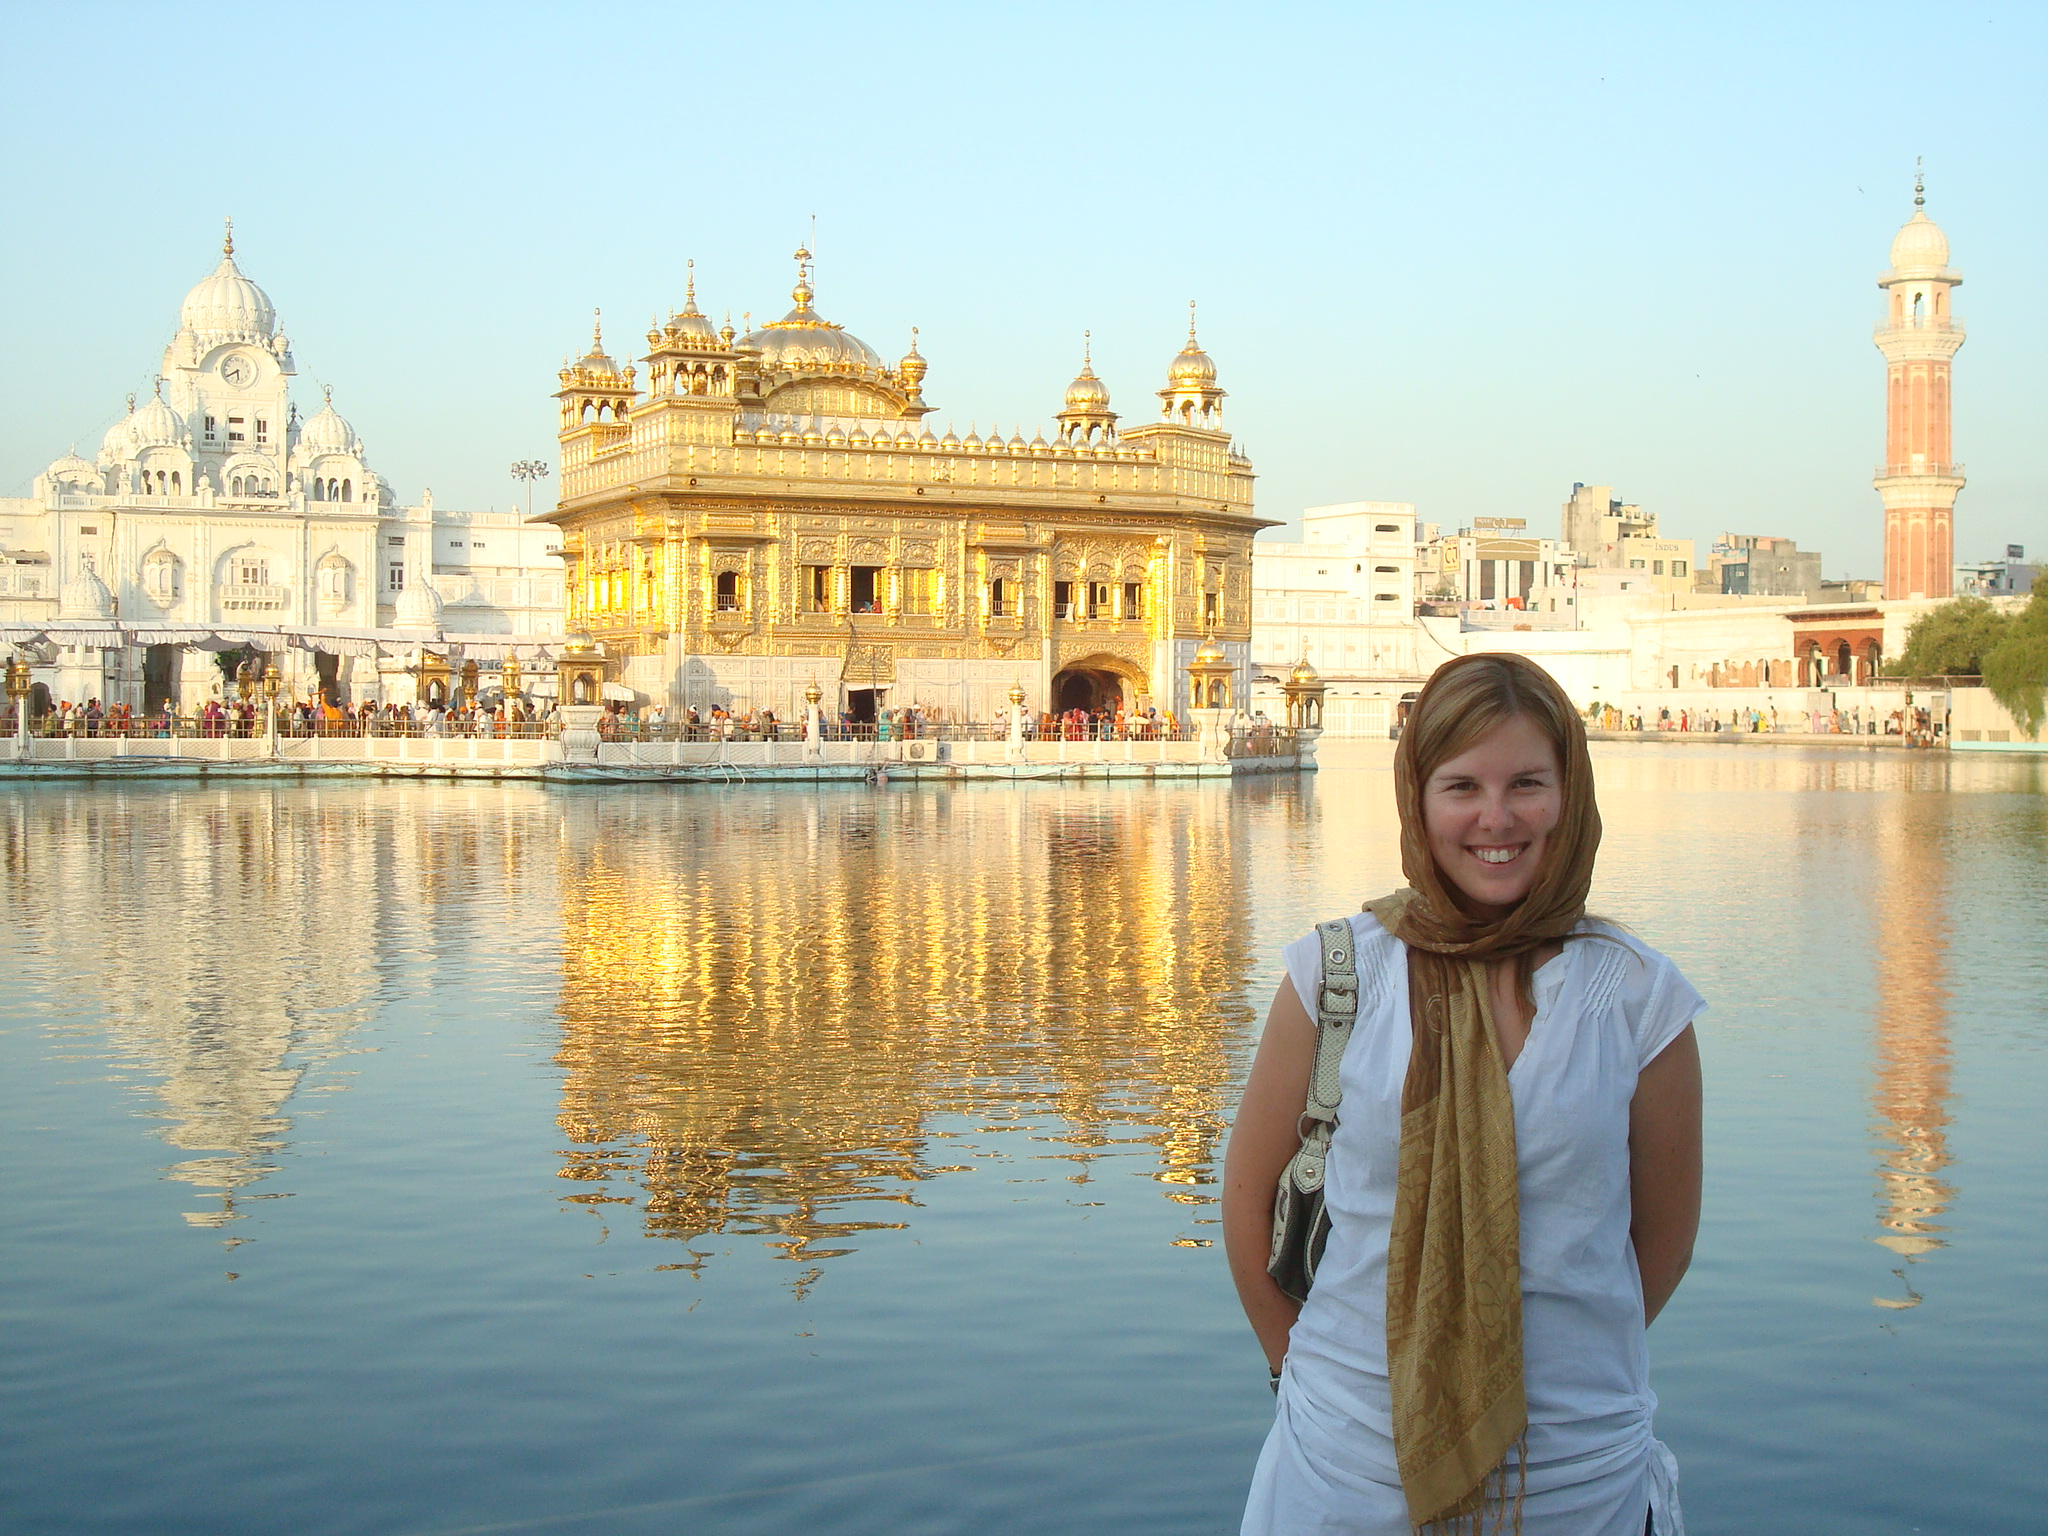 Erz visits the Golden Temple in Amritsar, India. Photo courtesy of Kristin Erz.